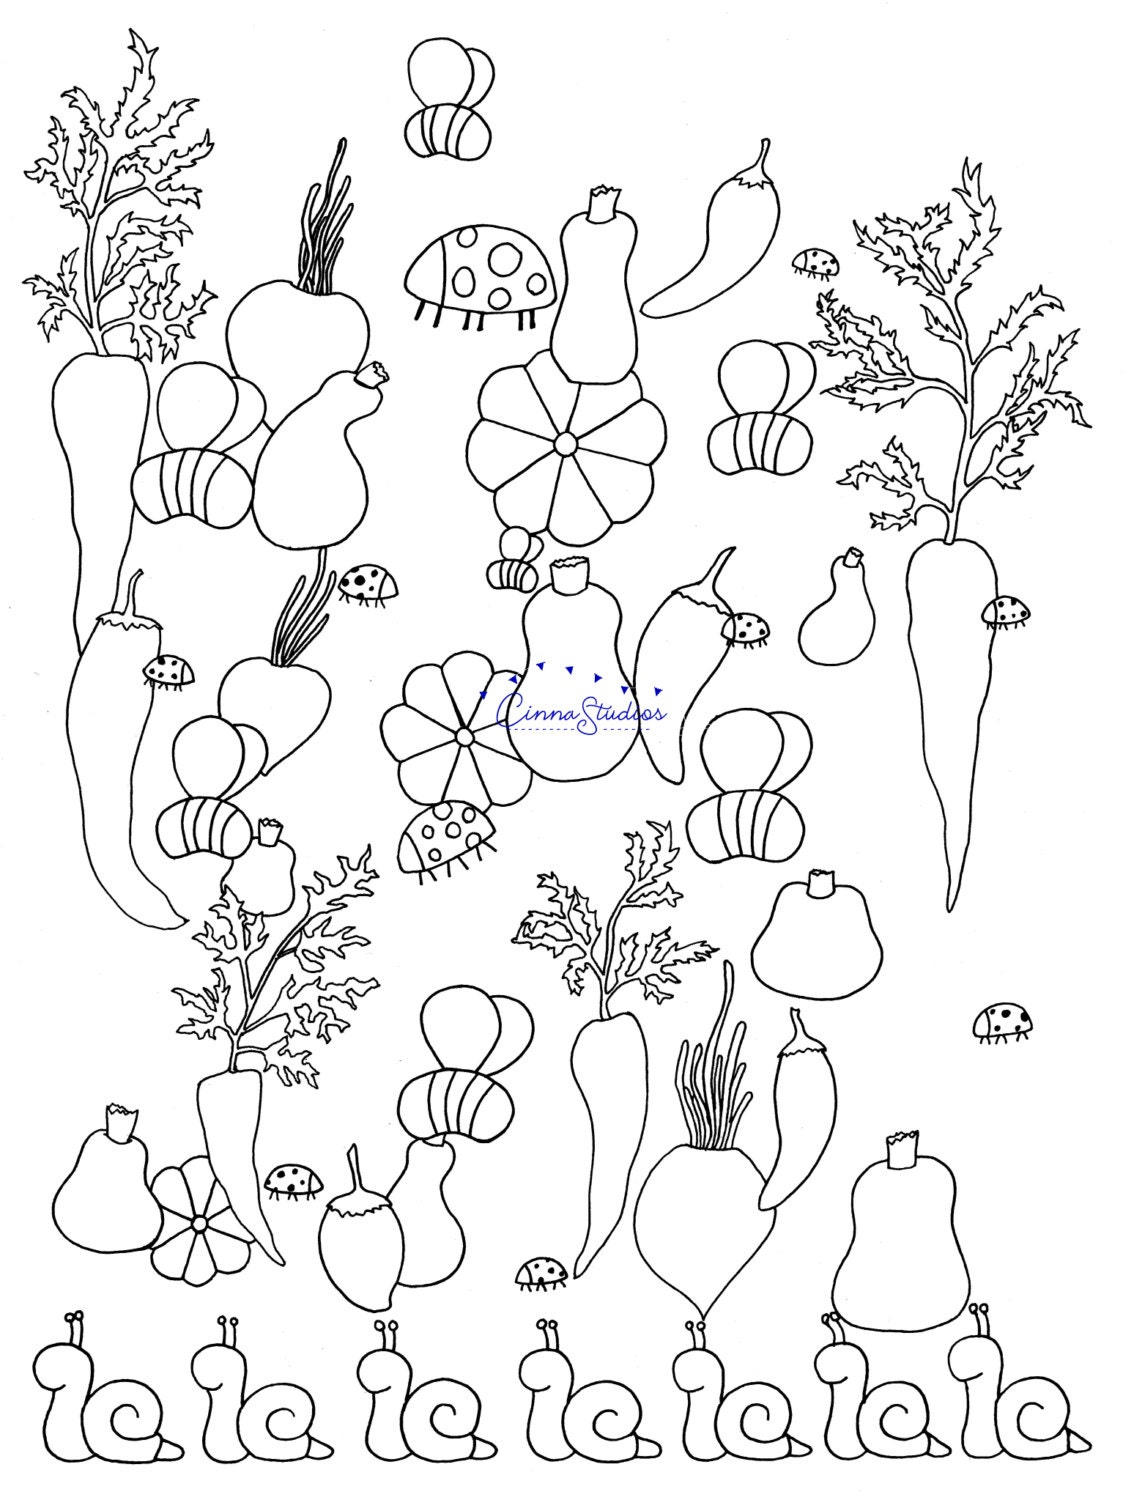 vegetables i coloring page coloring download printable page